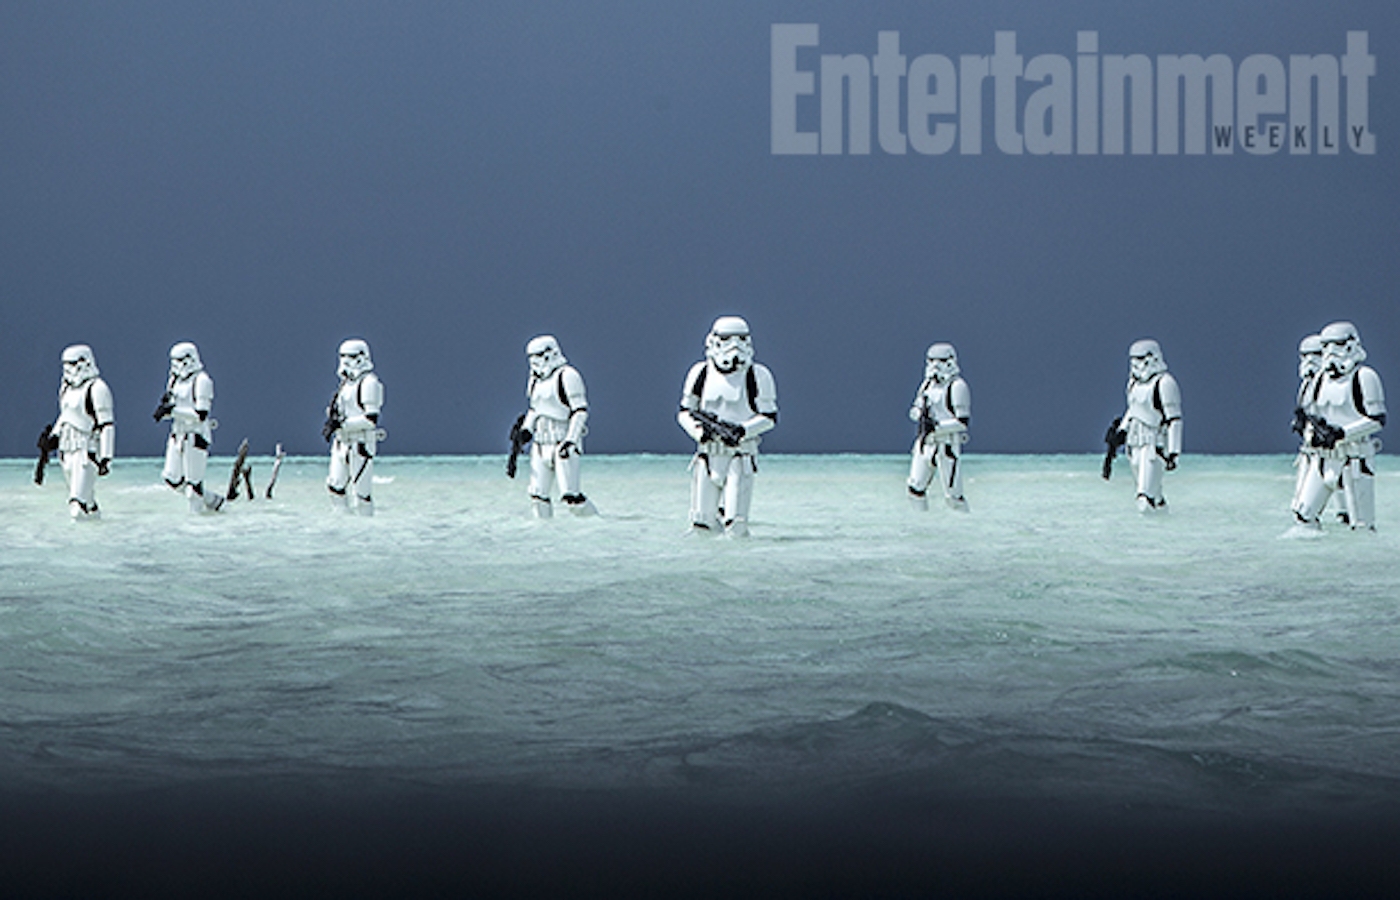 Rogue one a star wars story stormtroopers beach